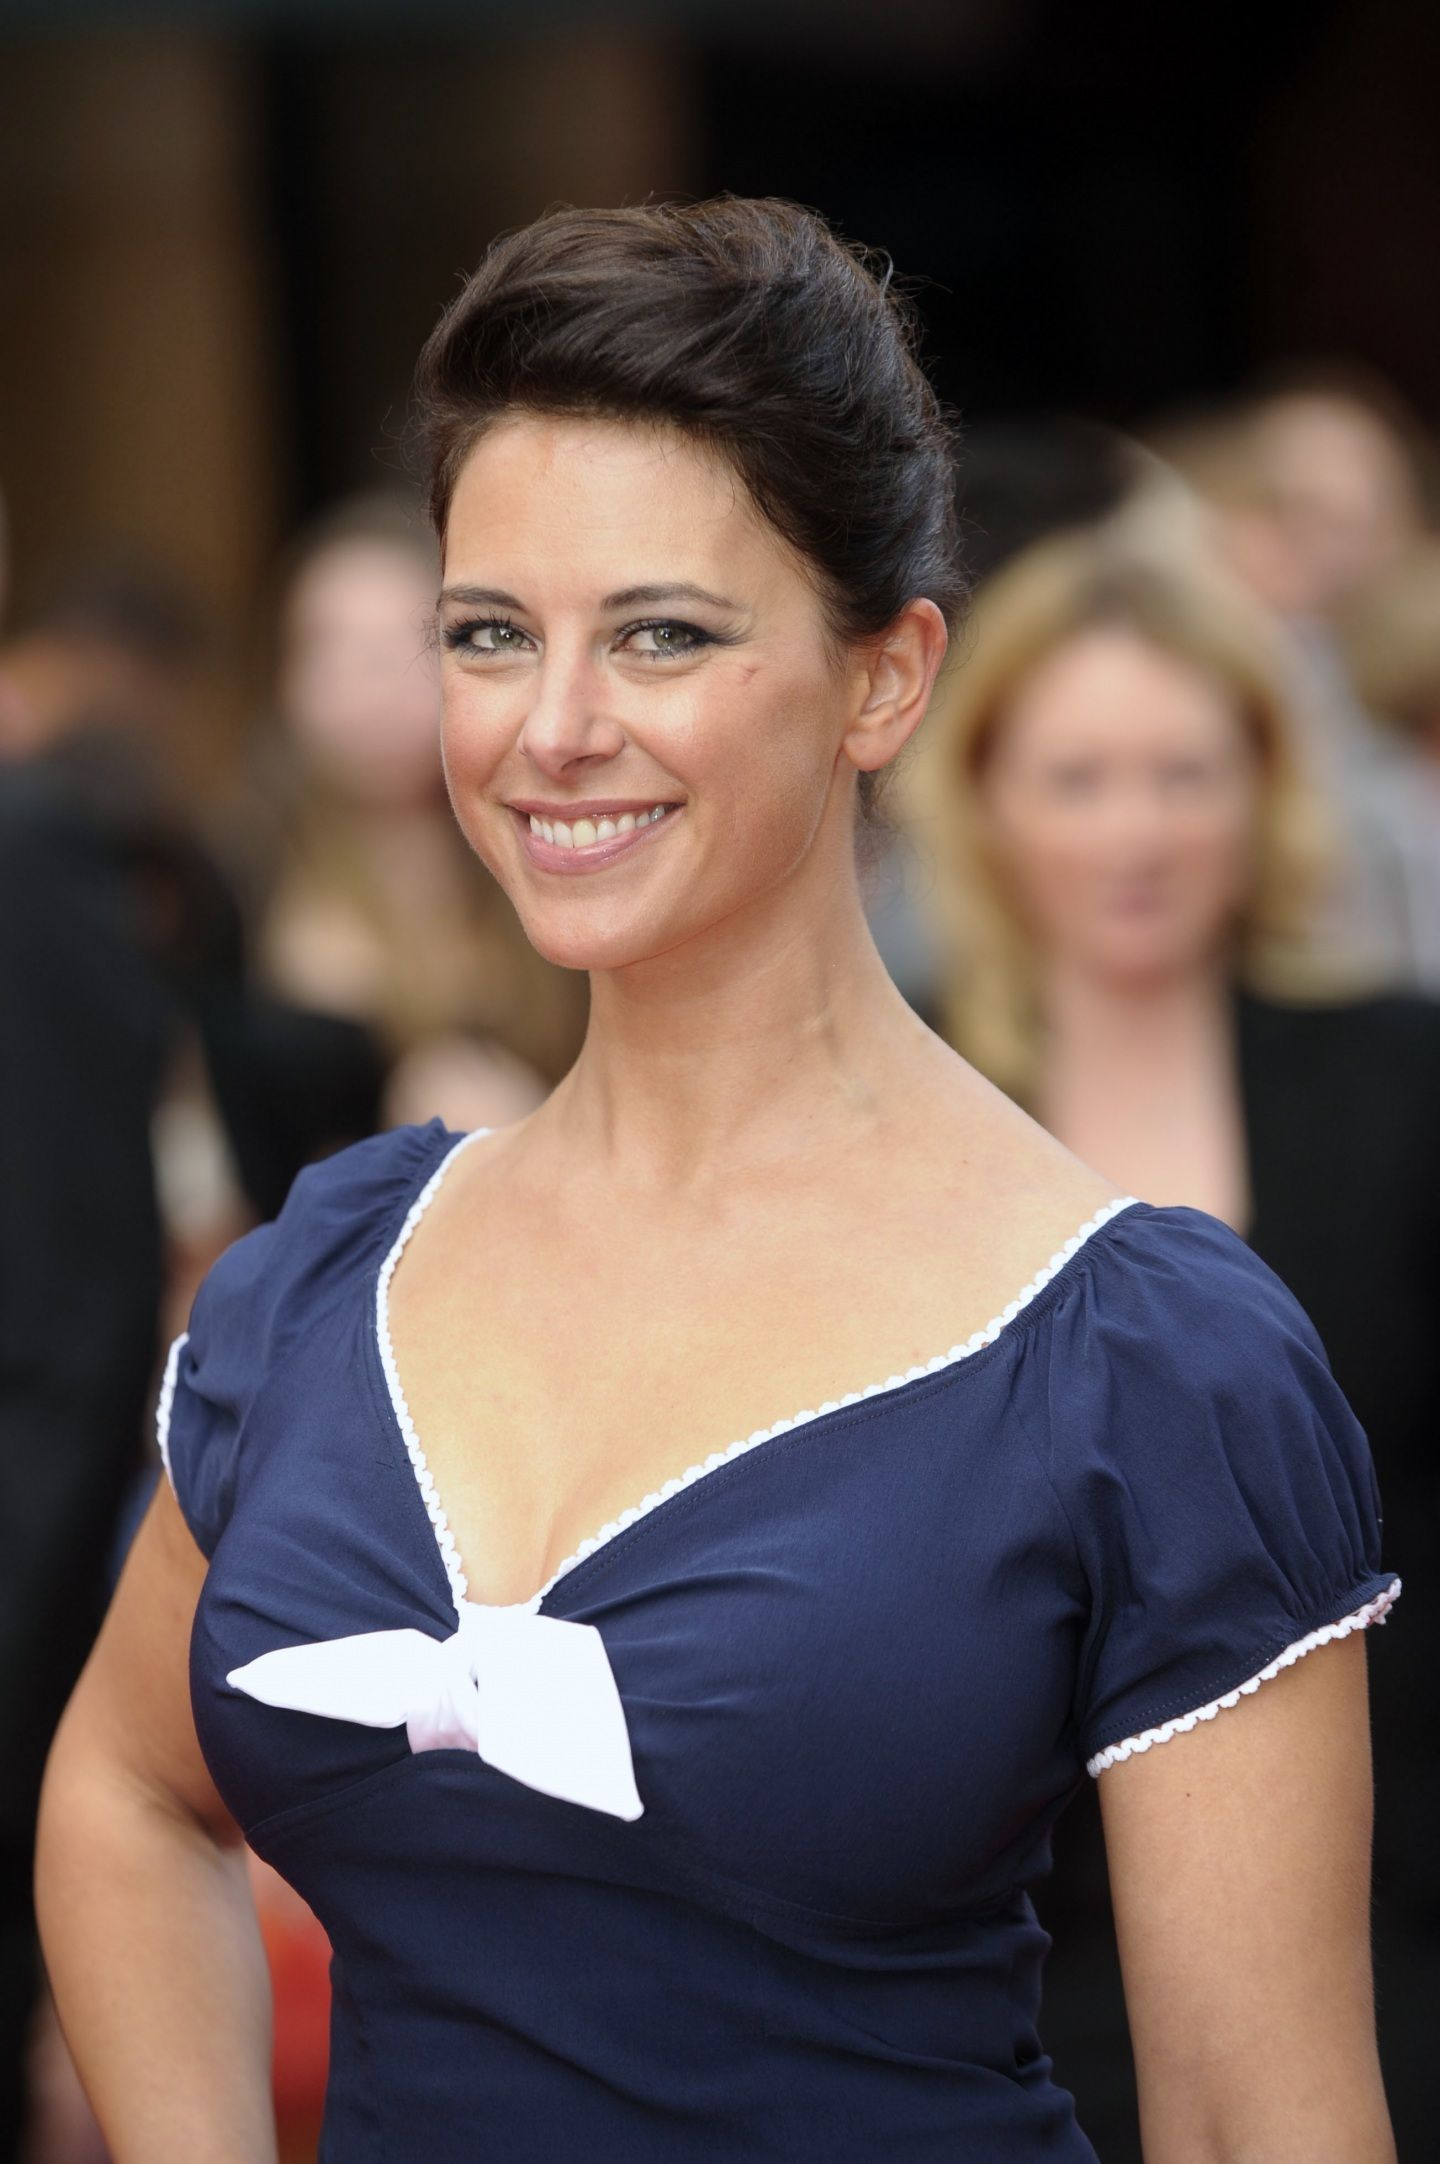 Forum on this topic: Sibylla Deen, belinda-stewart-wilson/